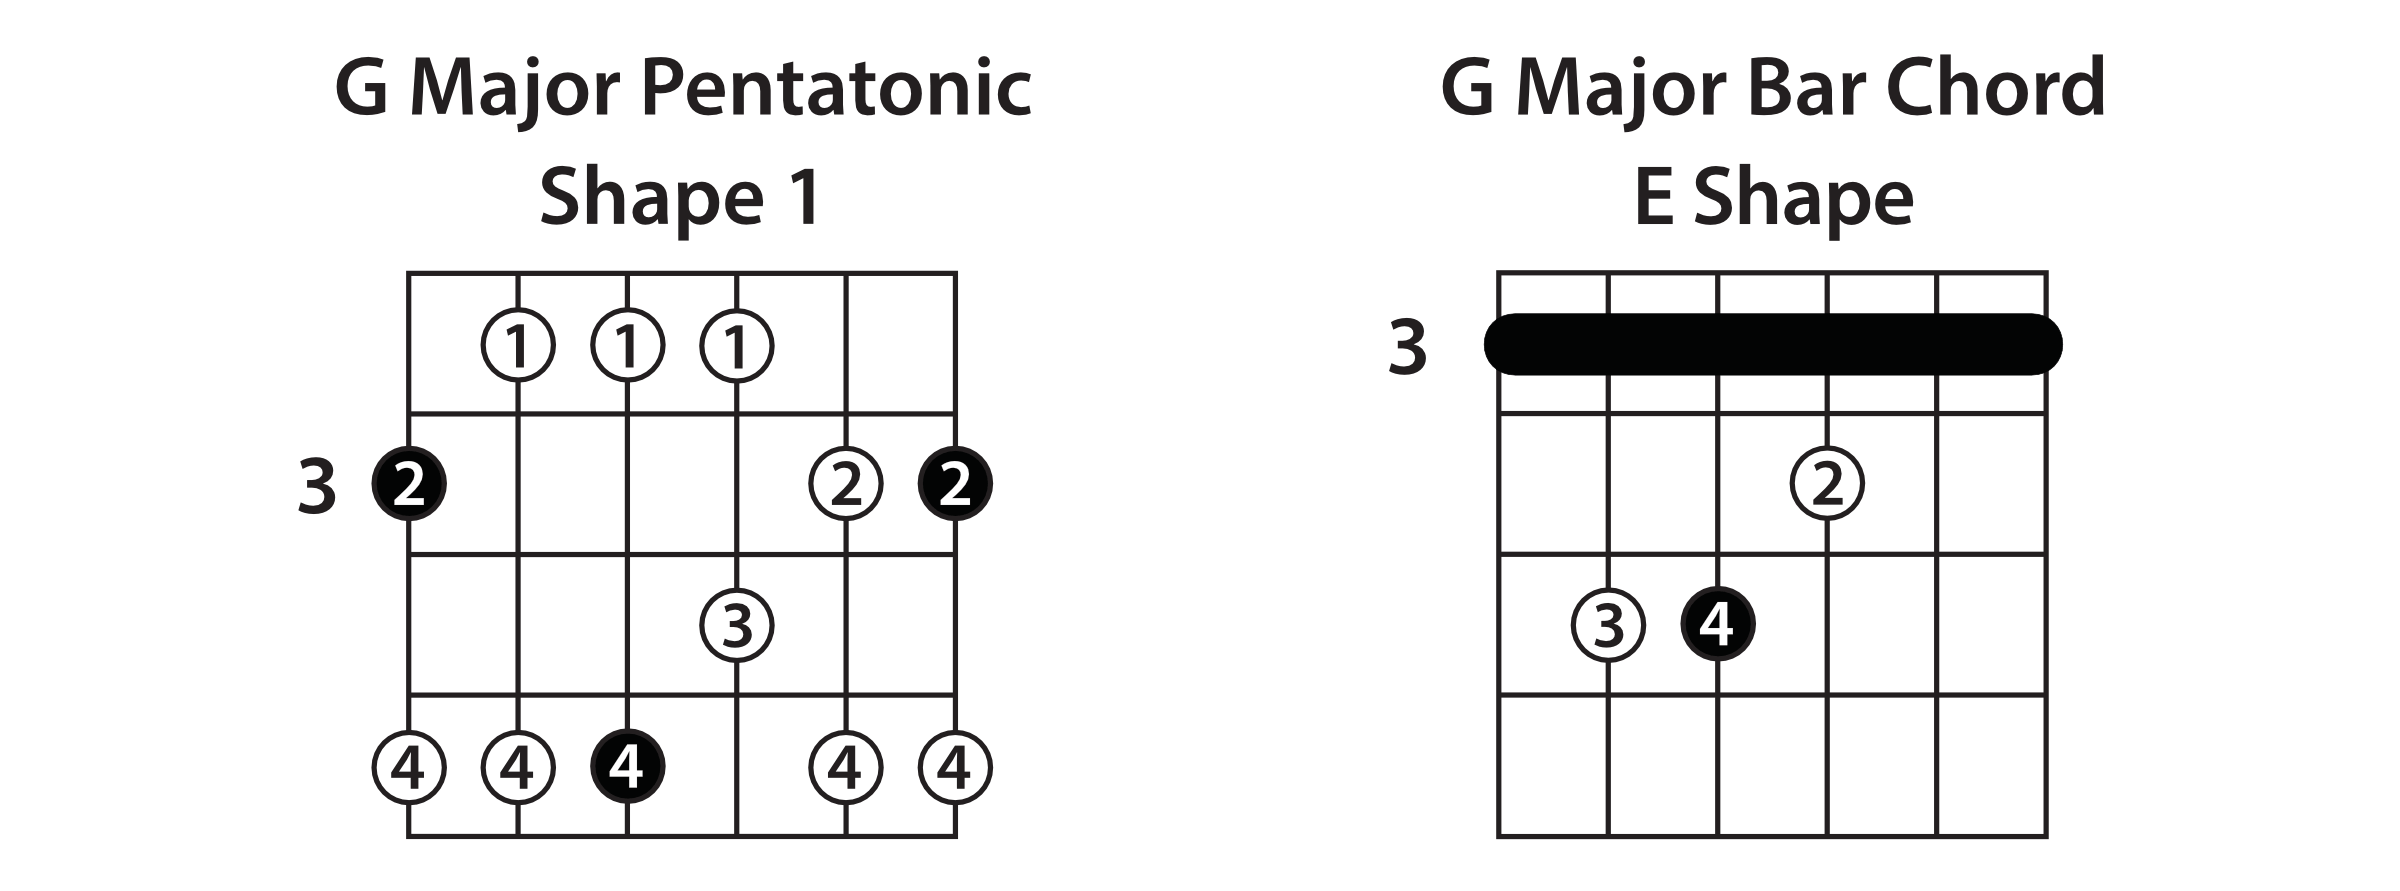 Major Pentatonic Shape 1